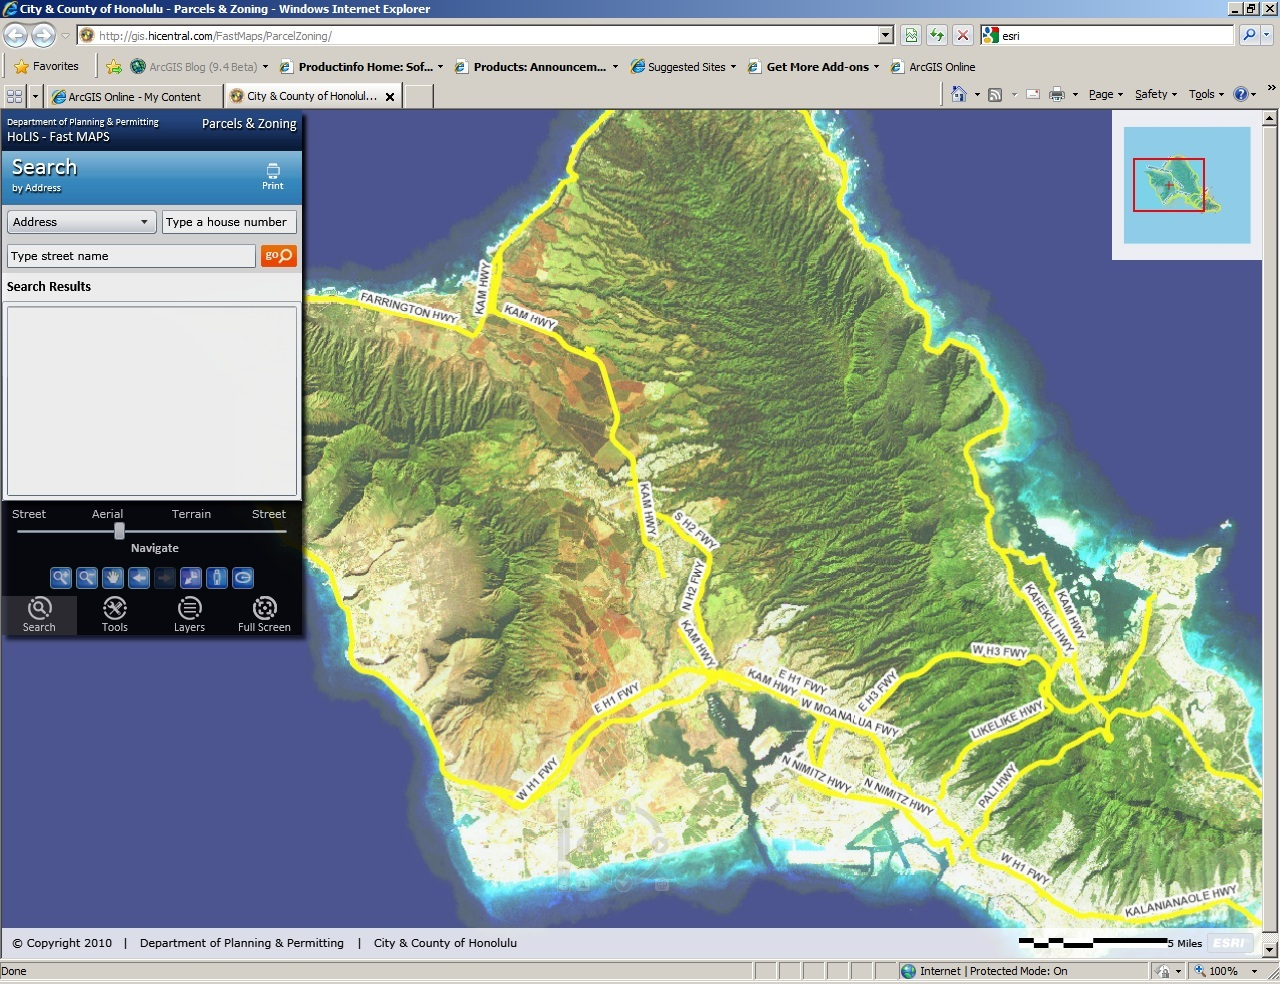 City and County of Honolulu Zoning and Parcel Map Application